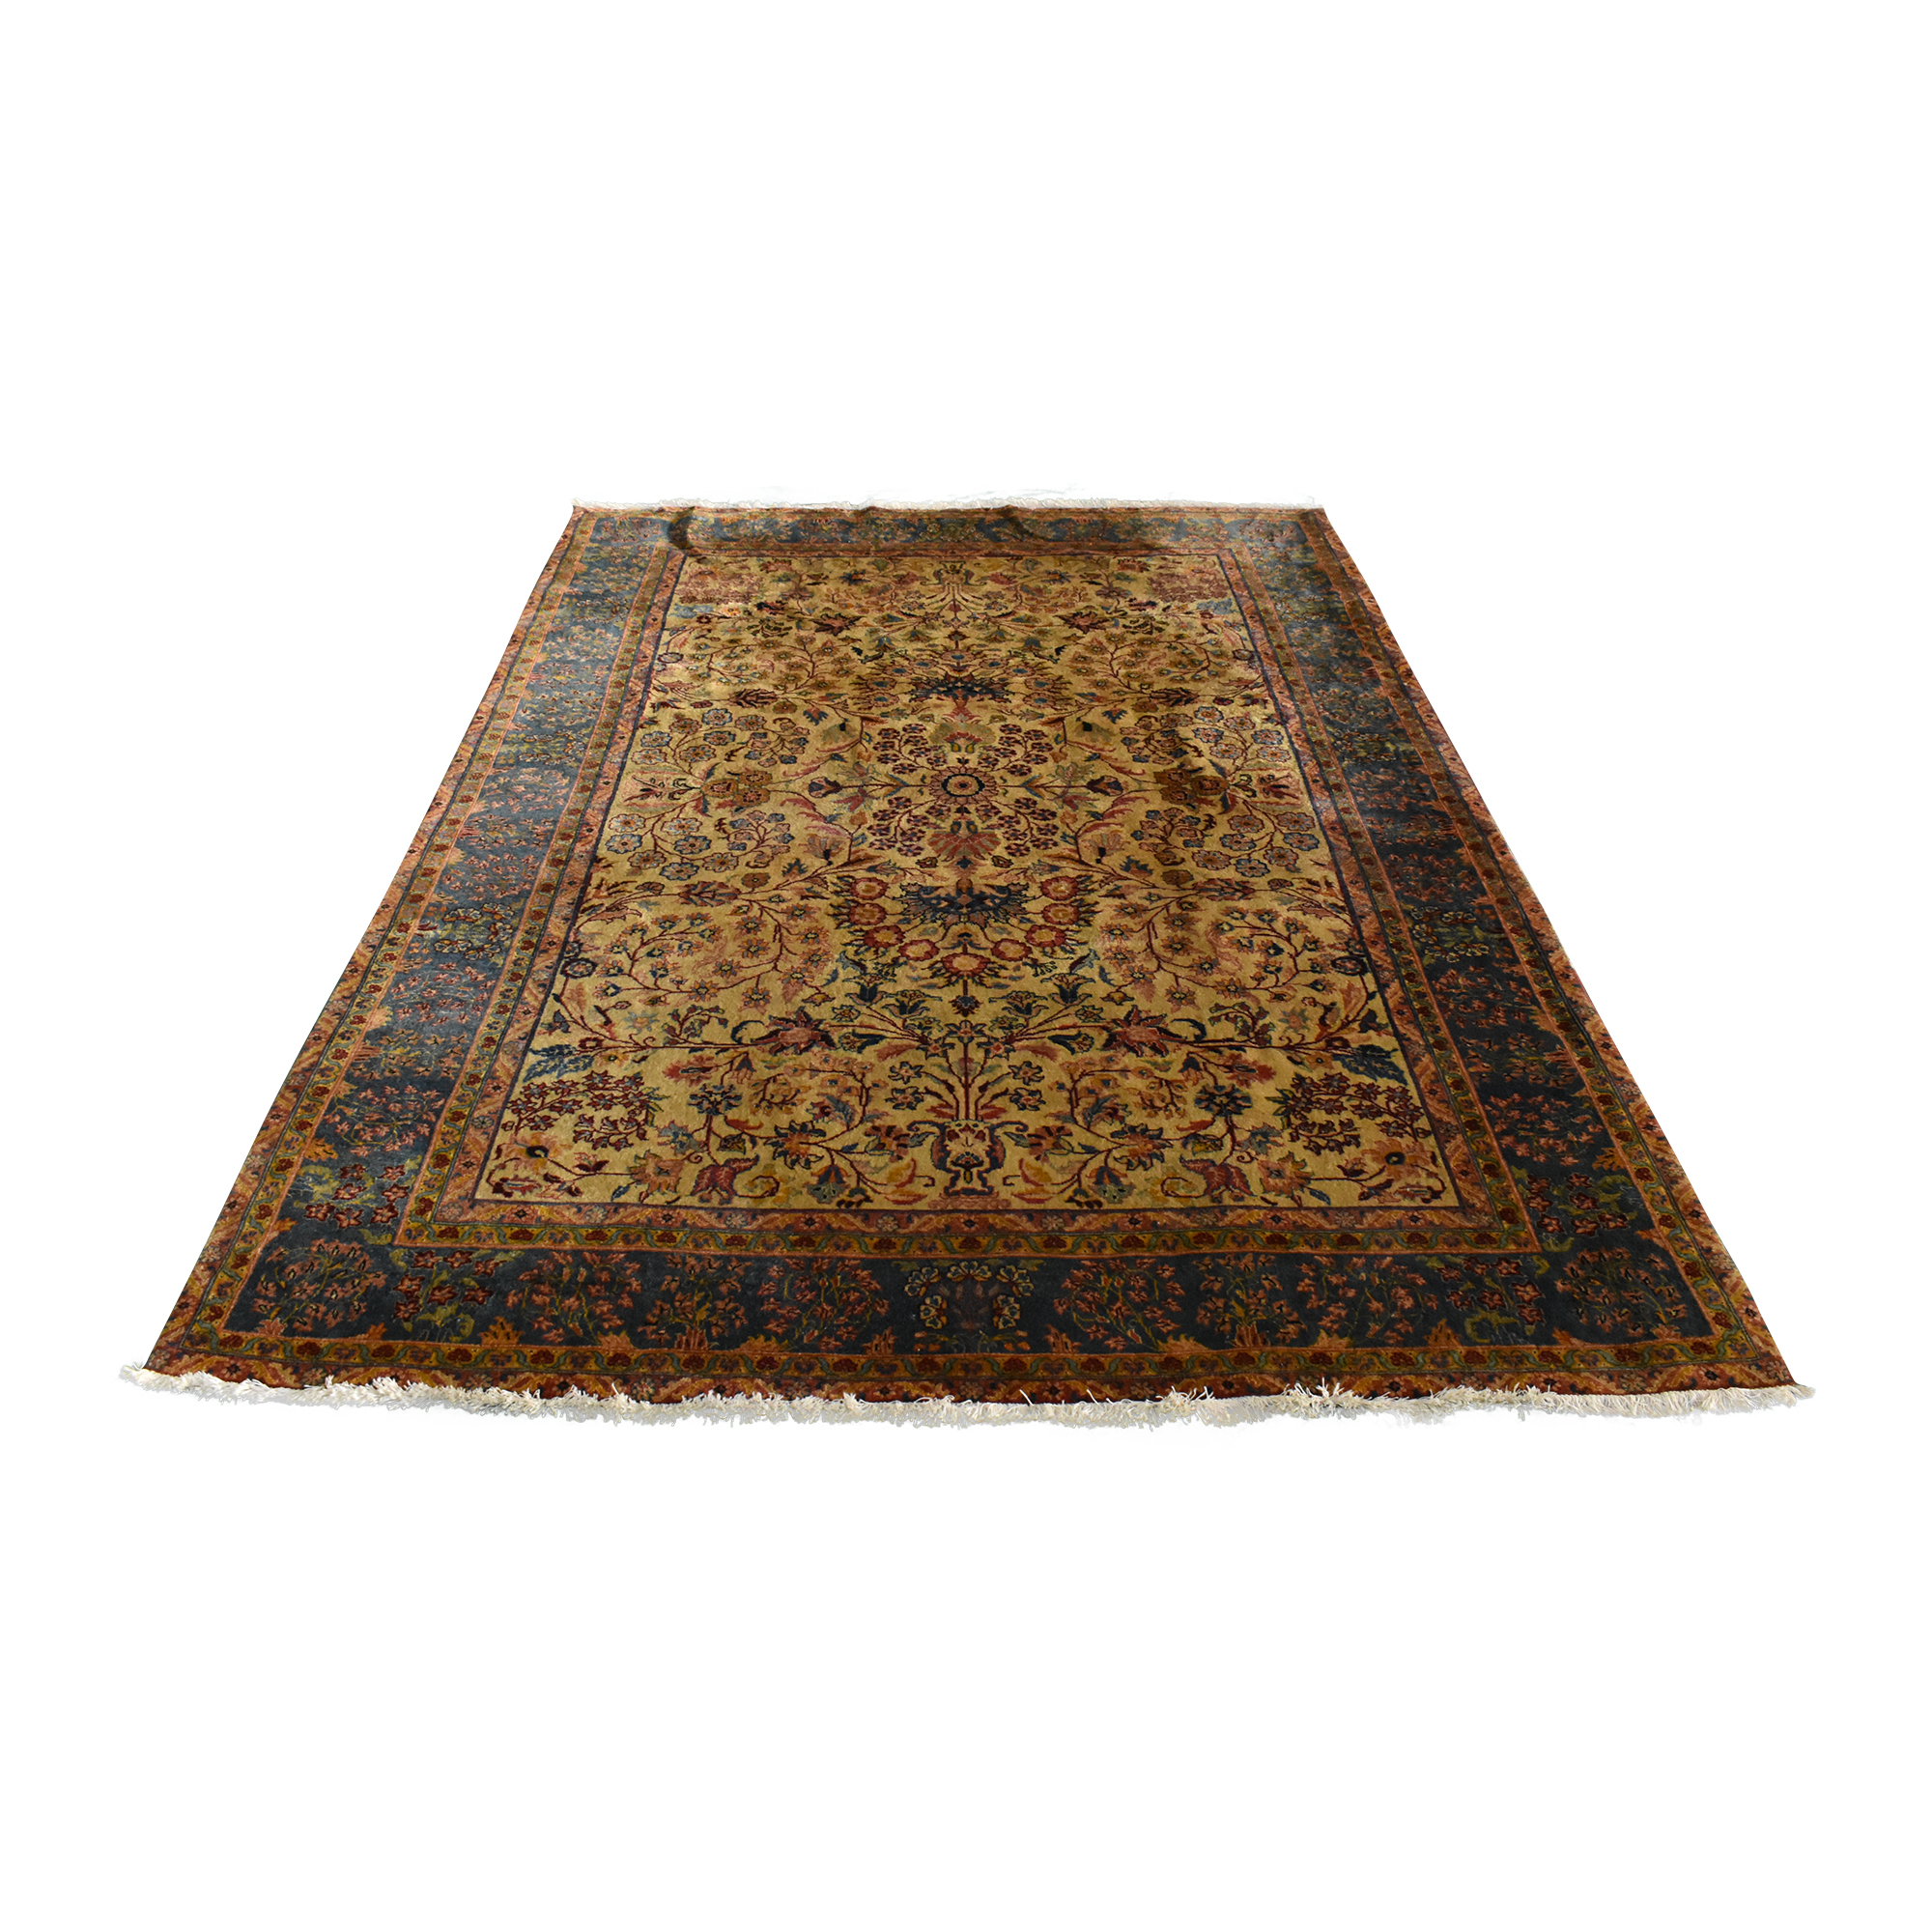 ABC Carpet & Home ABC Carpet & Home Ajmer Patterned Rug